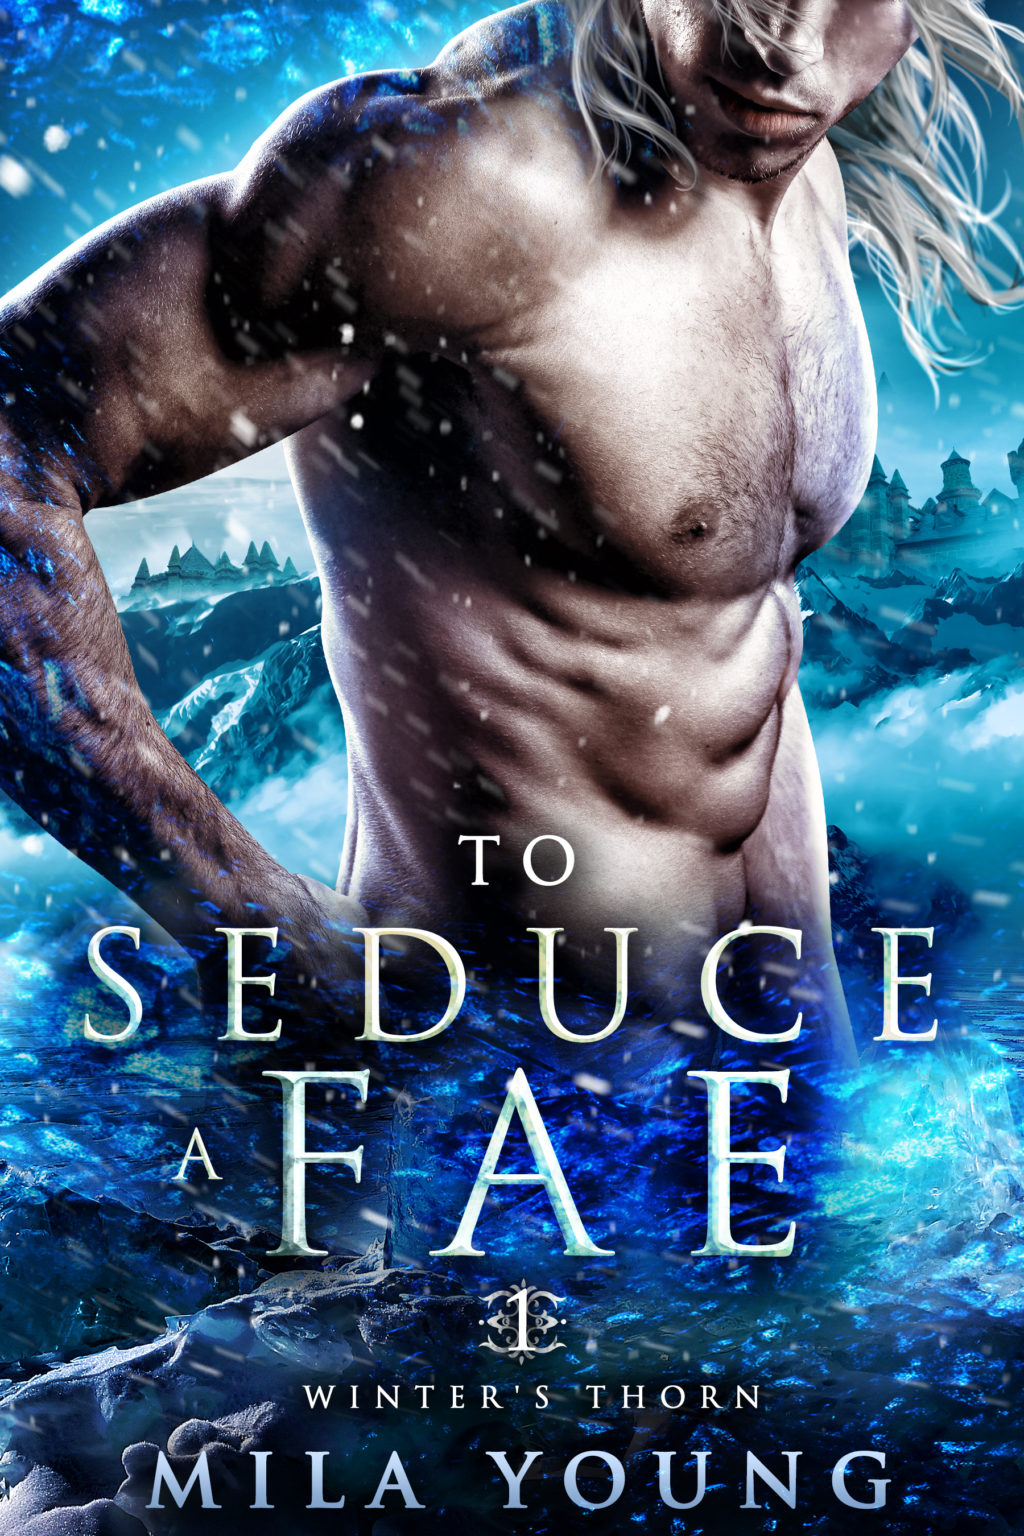 To Seduce a Fae (Winter's Thorn #1) by Mila Young